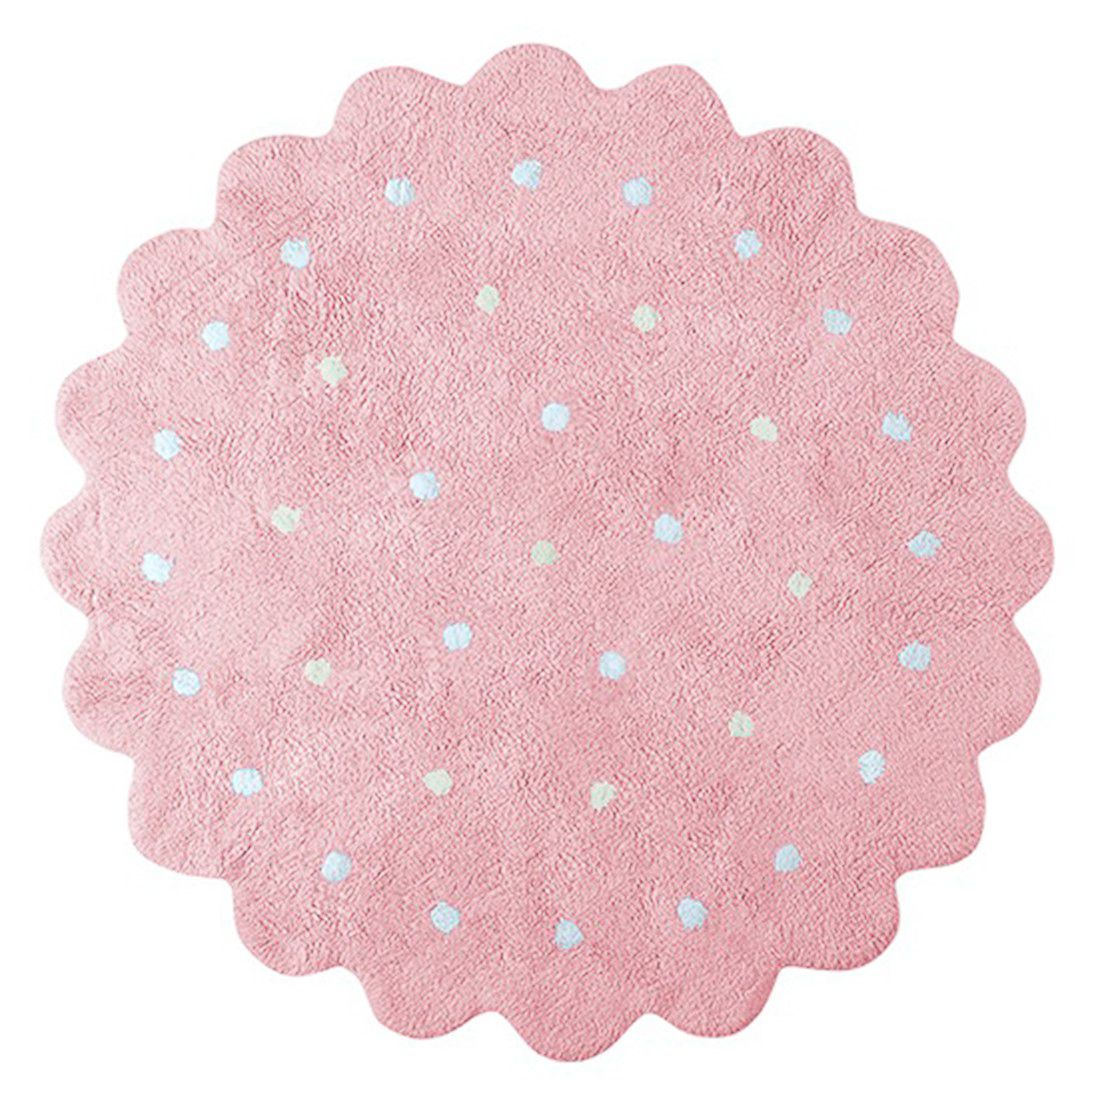 Tapete Lorena Canals Galletita Rosa 140 cm